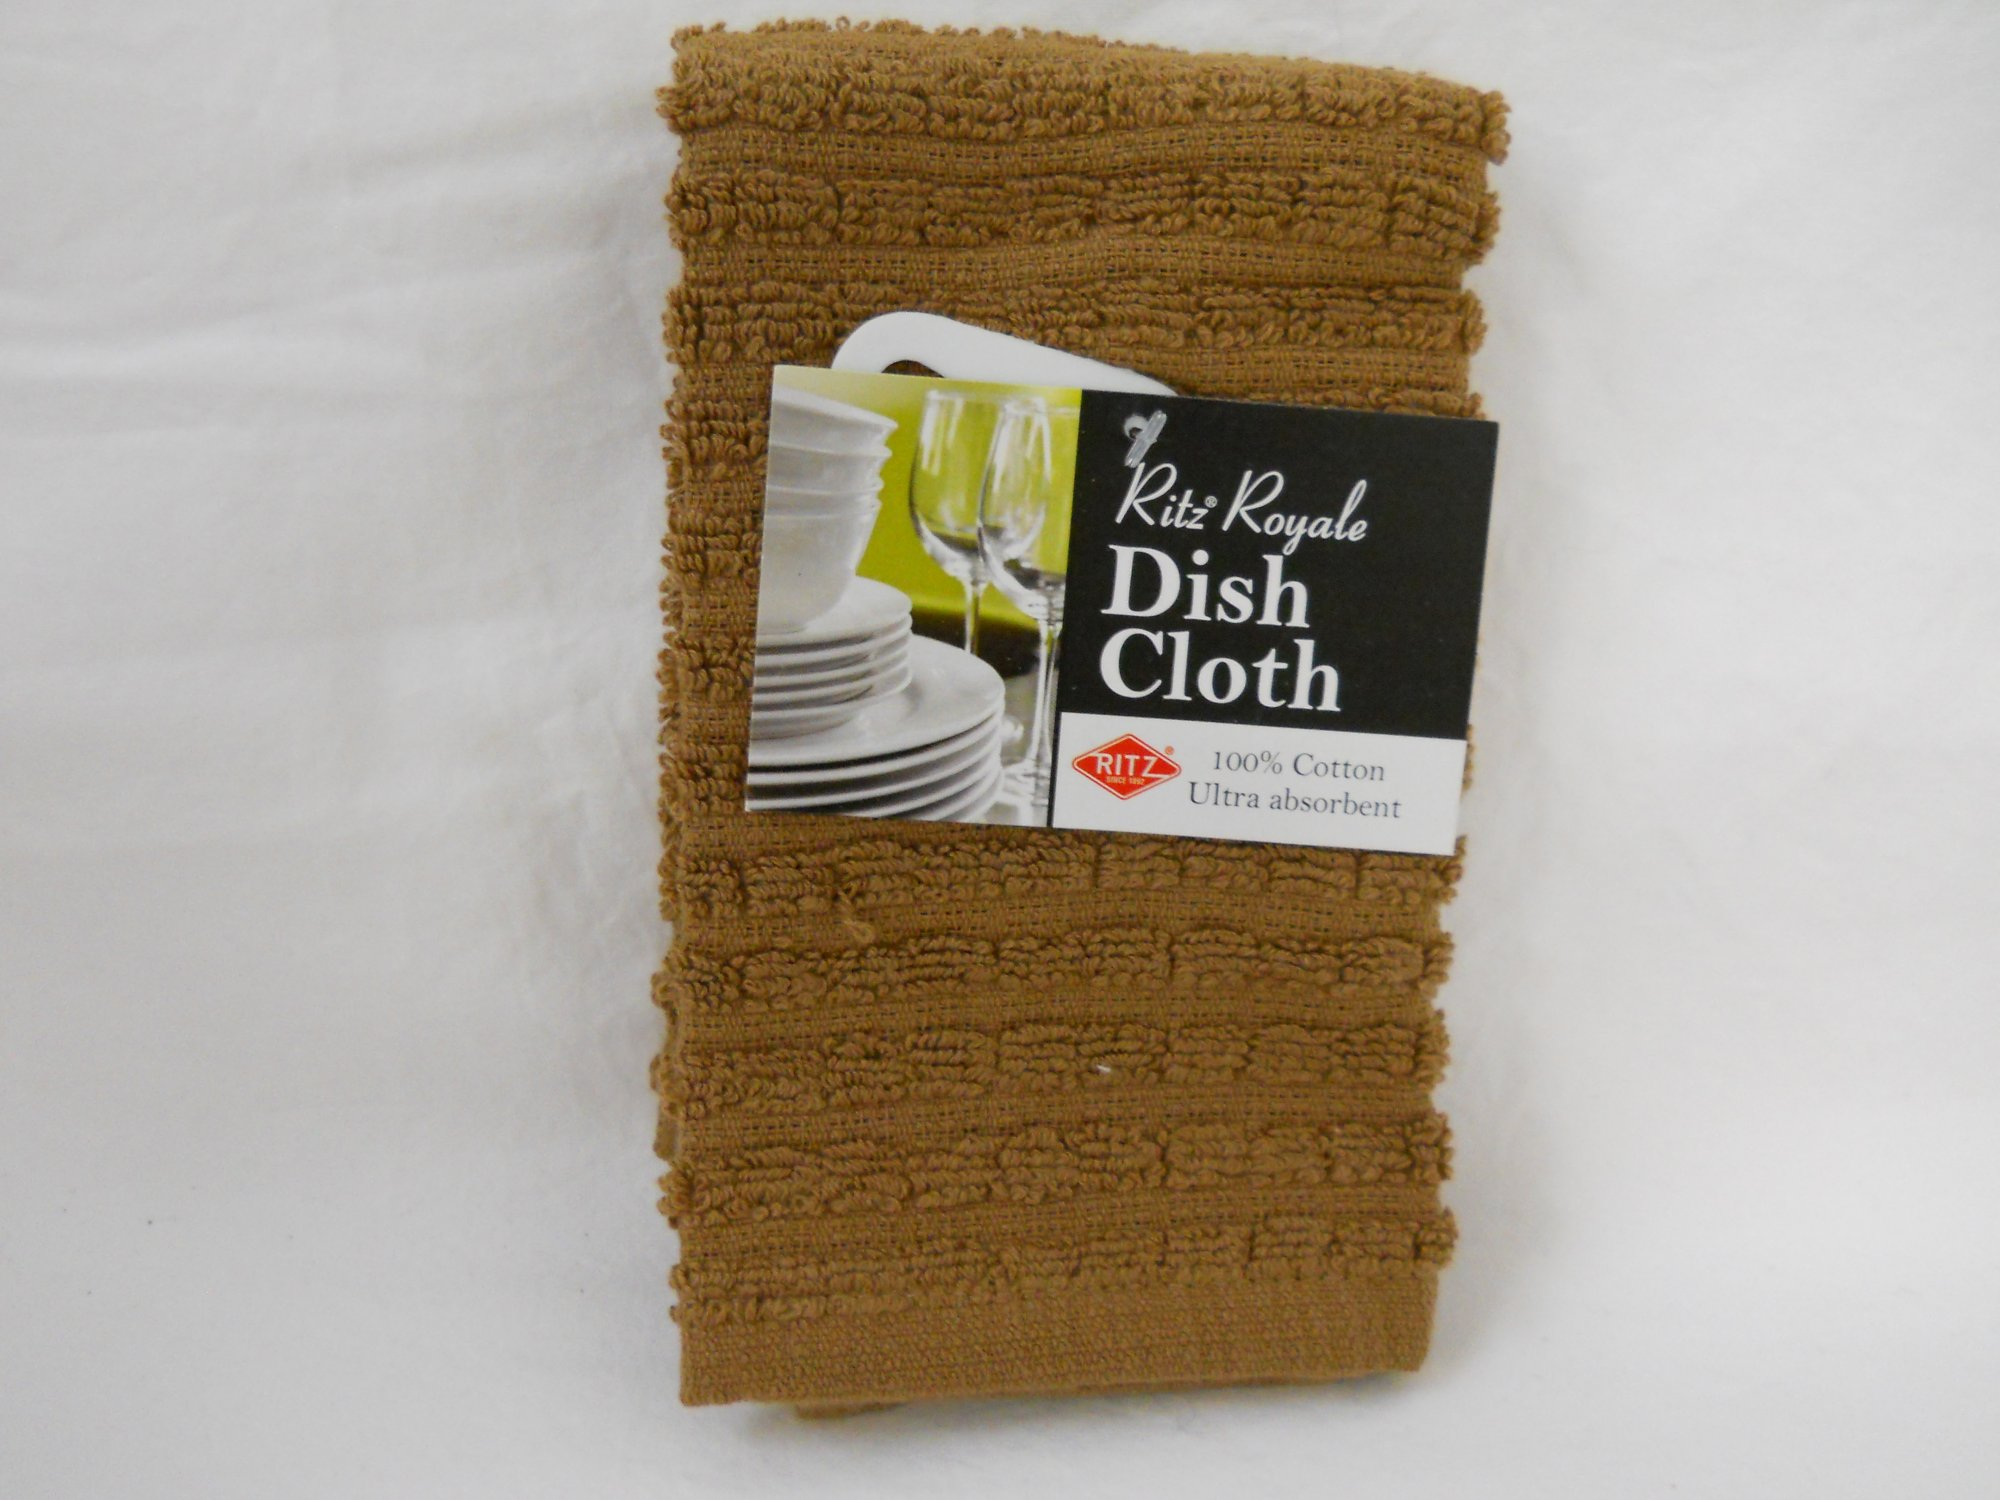 Ritz Royale dish cloth mocha